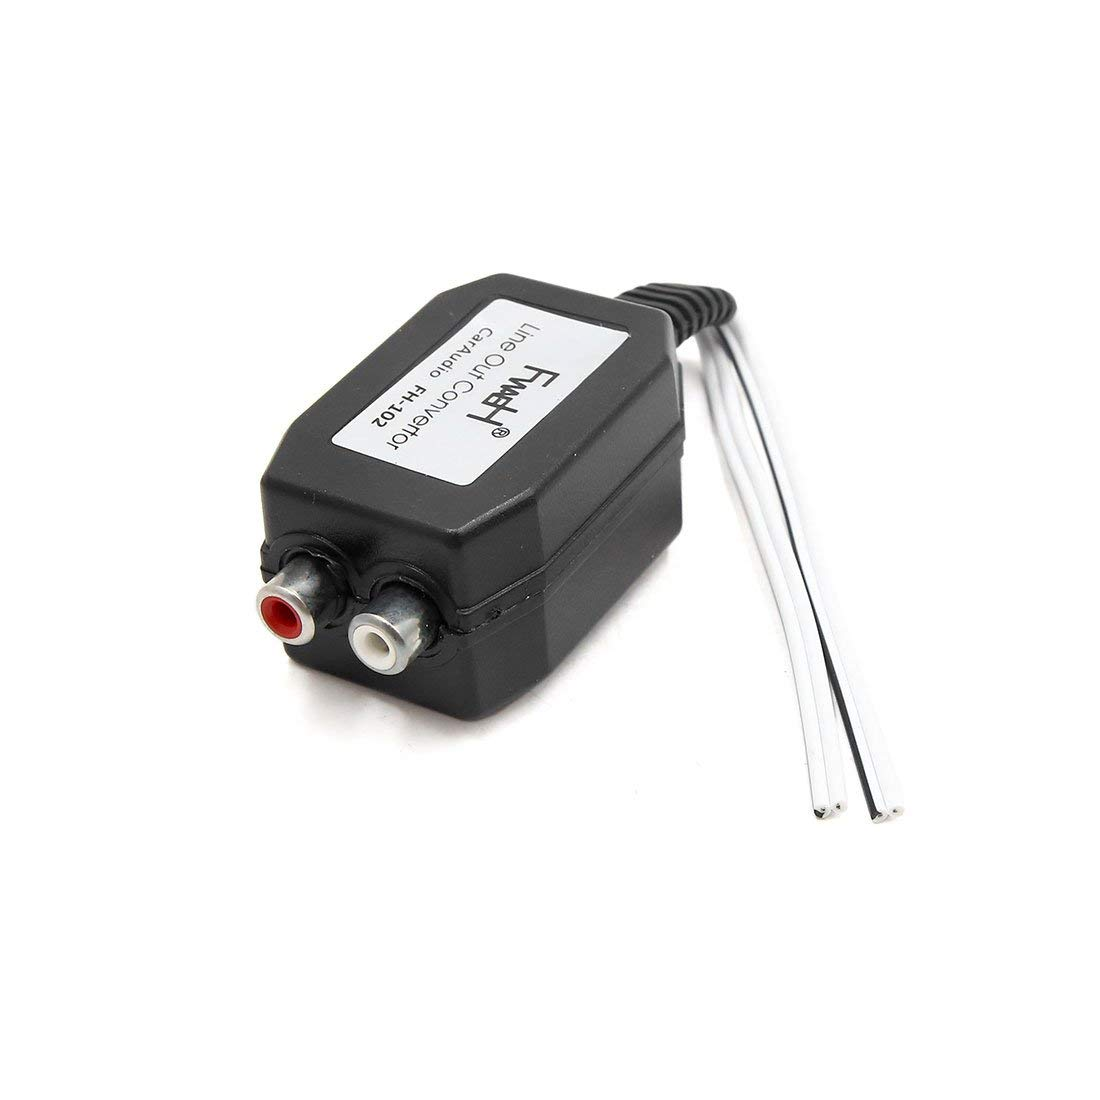 uxcell 12V High to Low Line Out 2 RCA Socket Audio Speaker Level Converter for Car